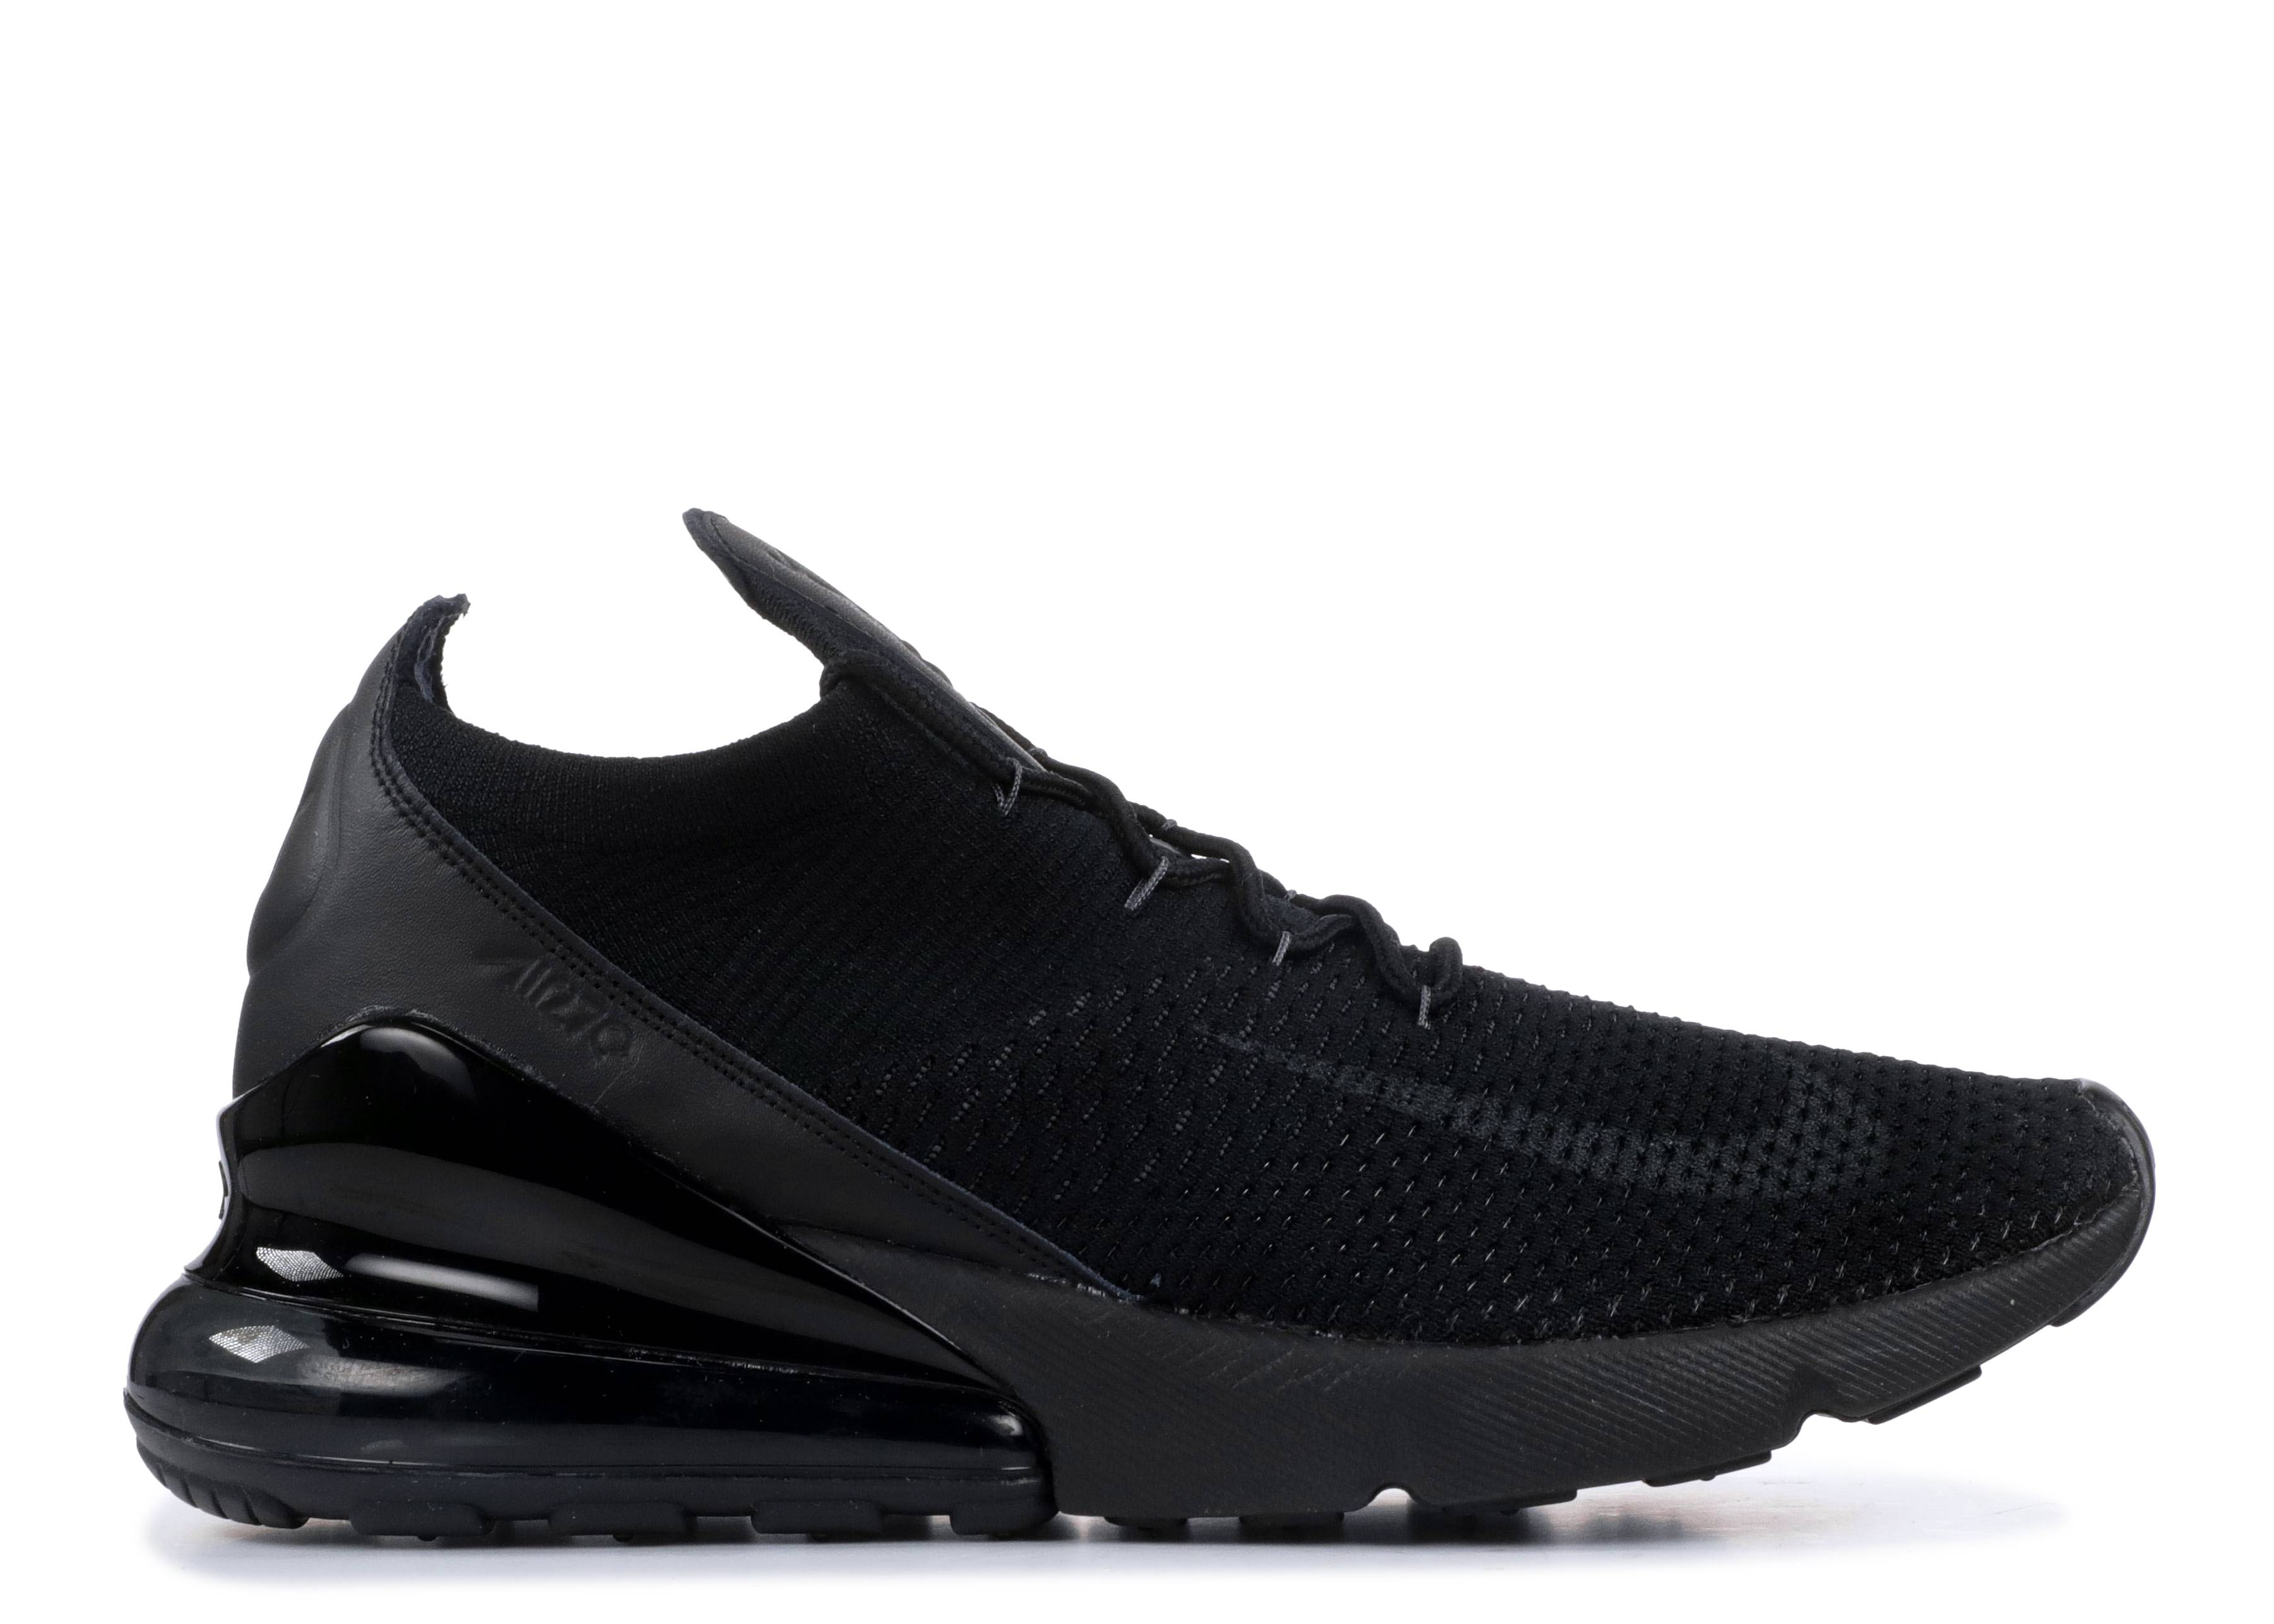 f1ca60d41818 Air Max 270 Flyknit - Nike - ao1023 005 - black anthracite-black ...